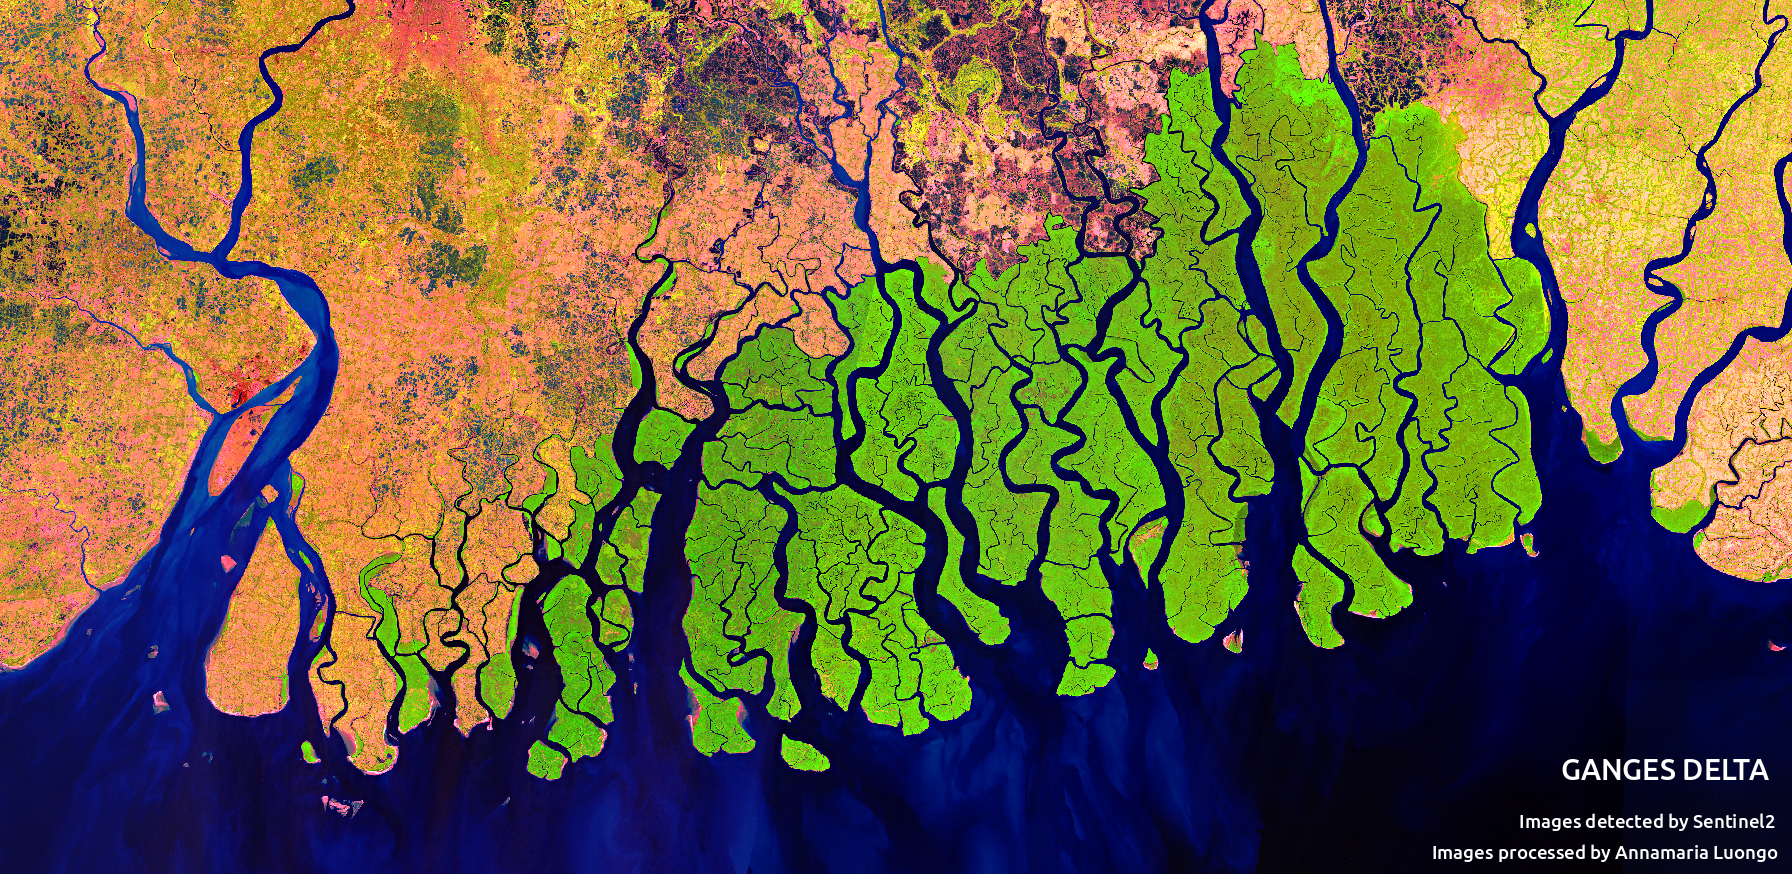 The Ganges Delta Seen From Space